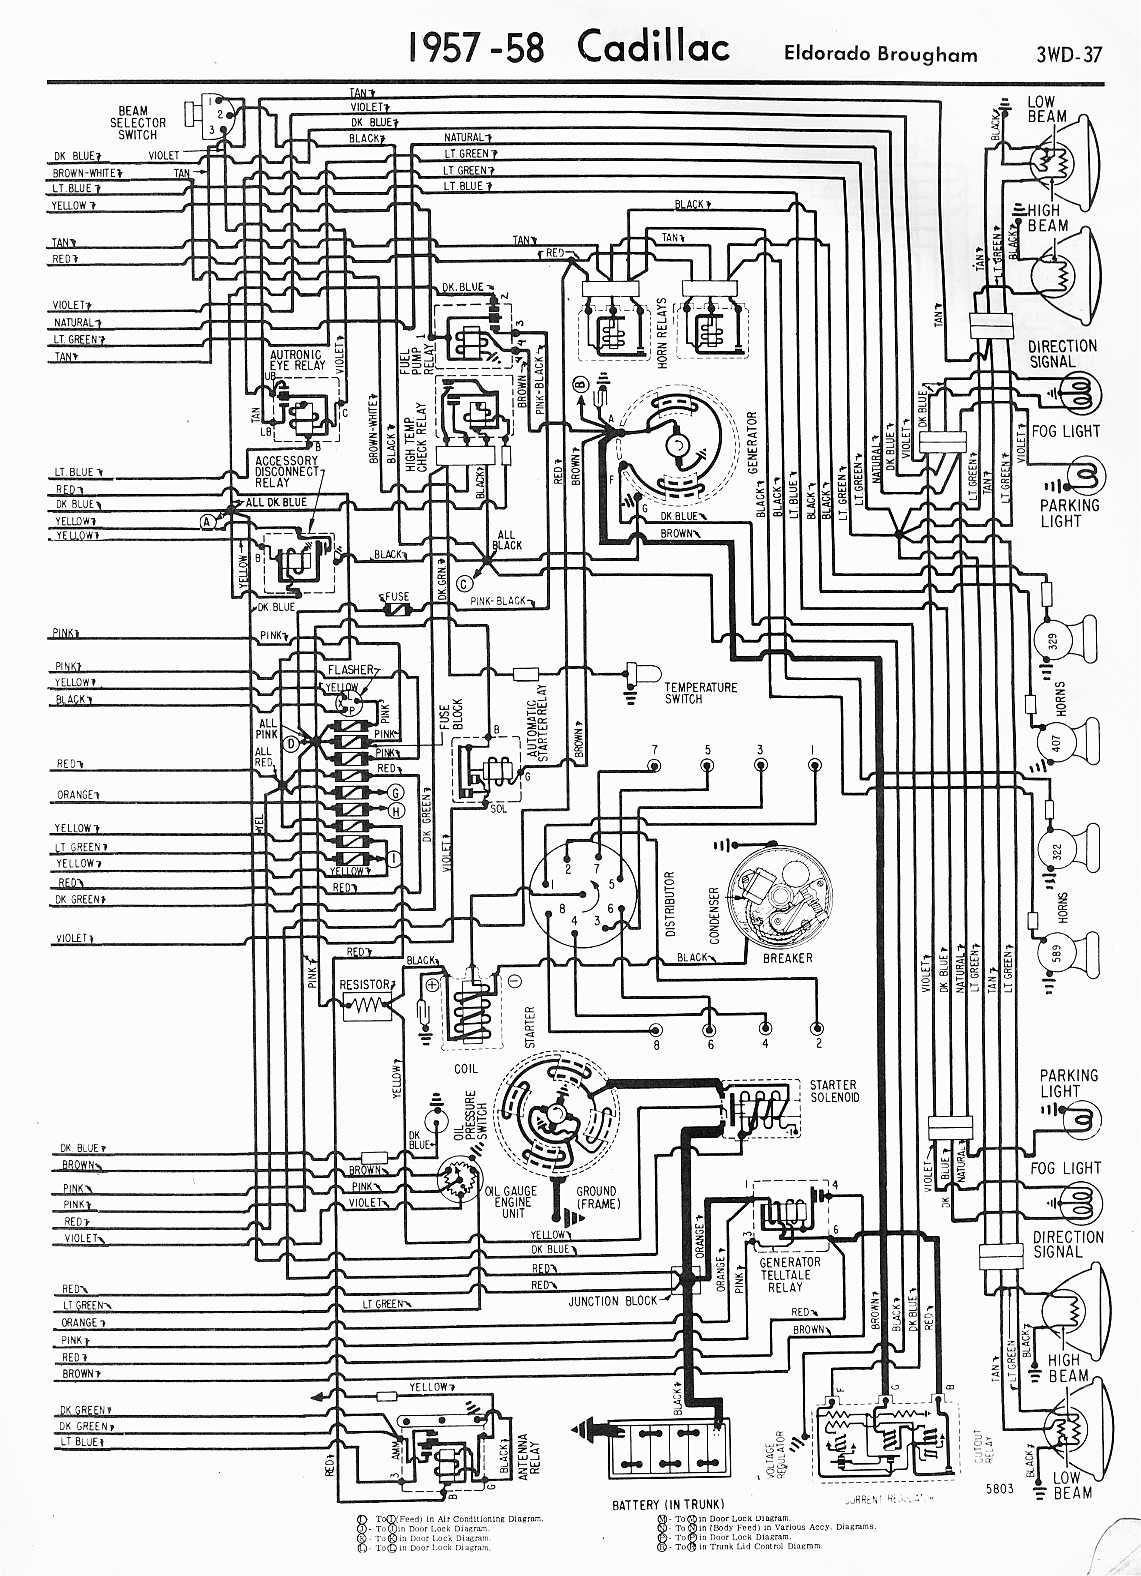 1957 1958+Cadillac+Eldorado+Brougham+Wiring+Diagram 67 cadillac wiring diagram wiring diagram data